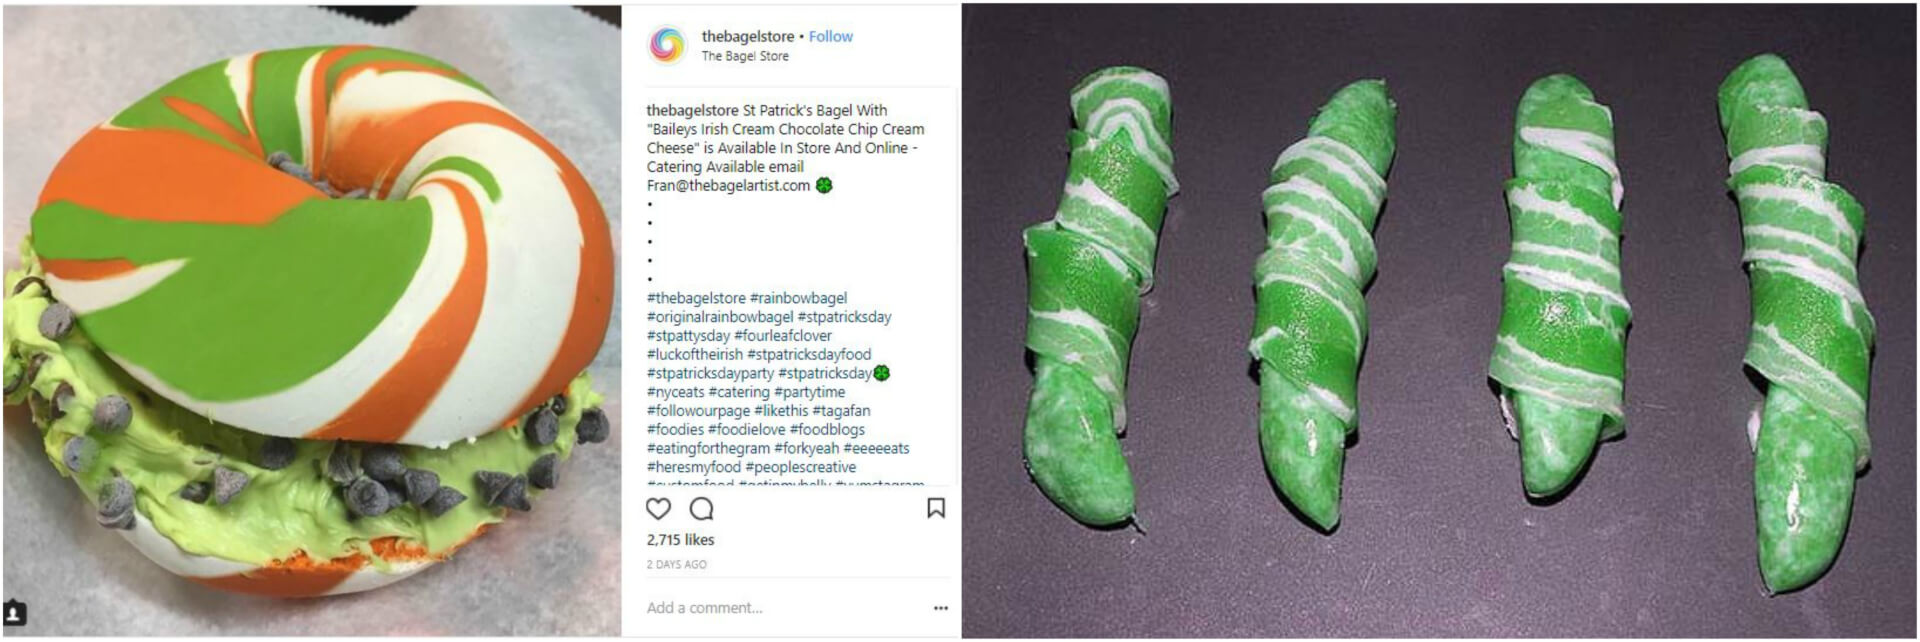 Food dyed green for St. Patrick's Day